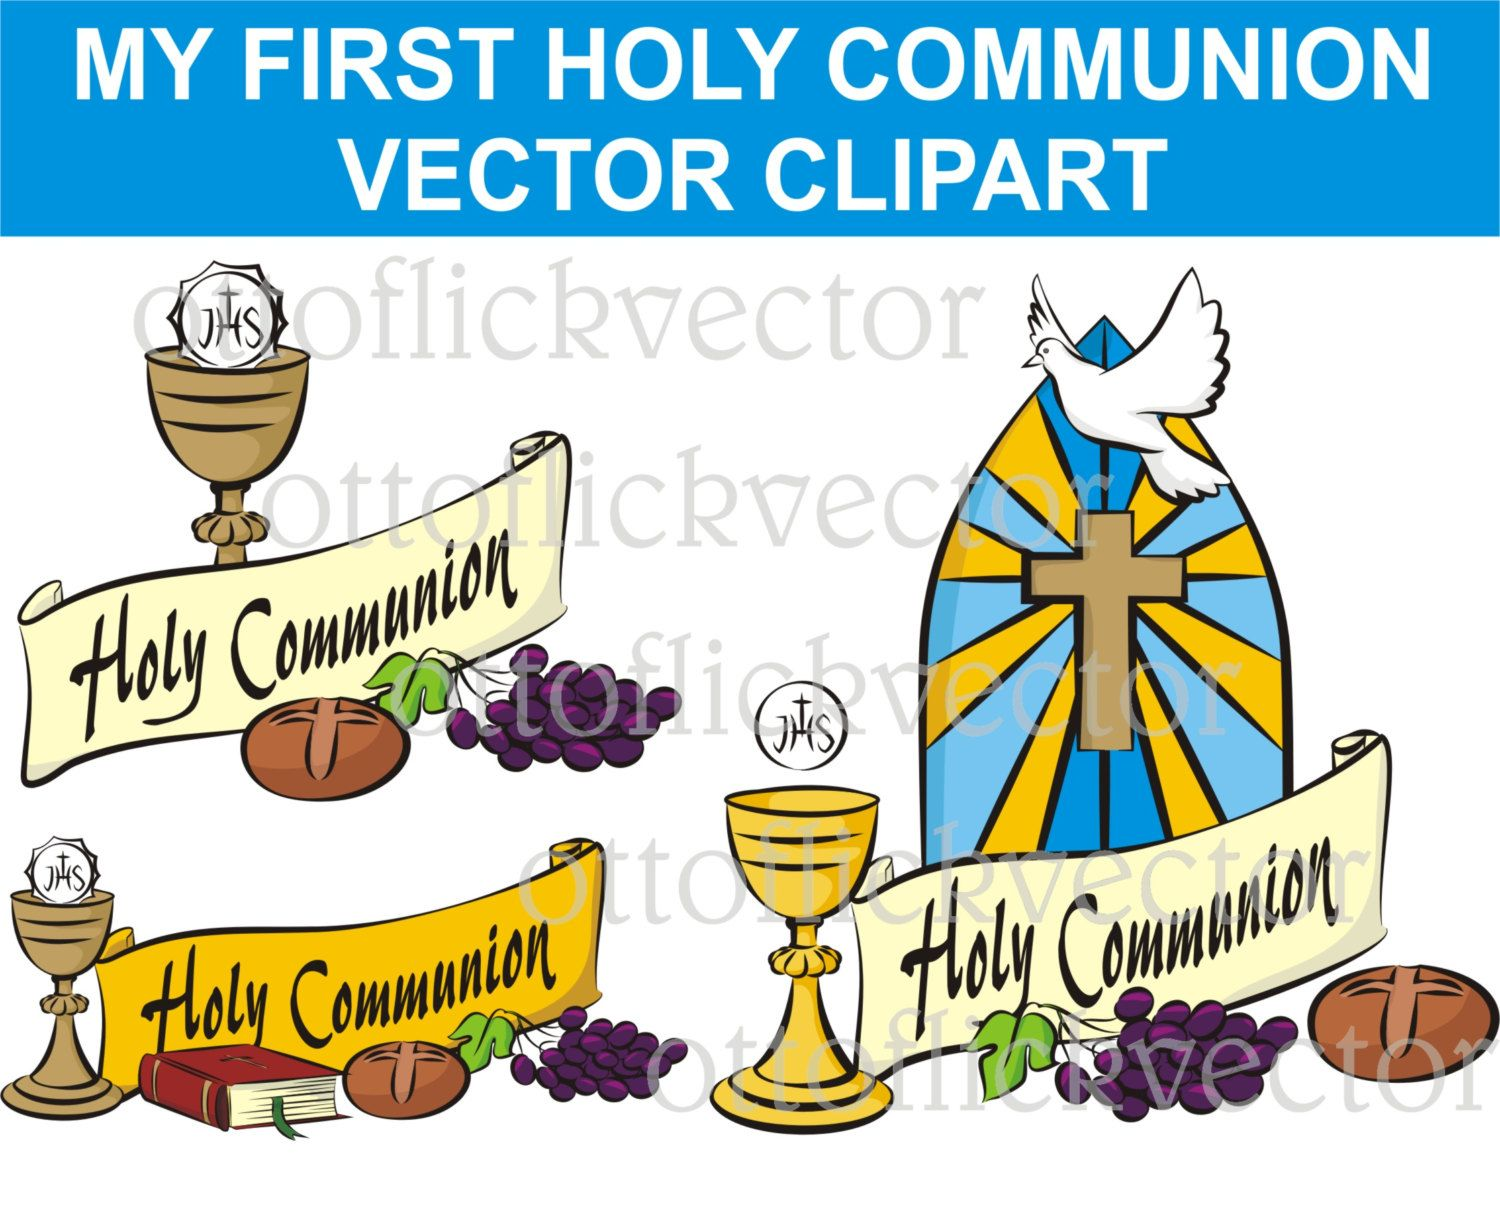 MY FIRST Holy COMMUNION Vector Clipart, religion symbols